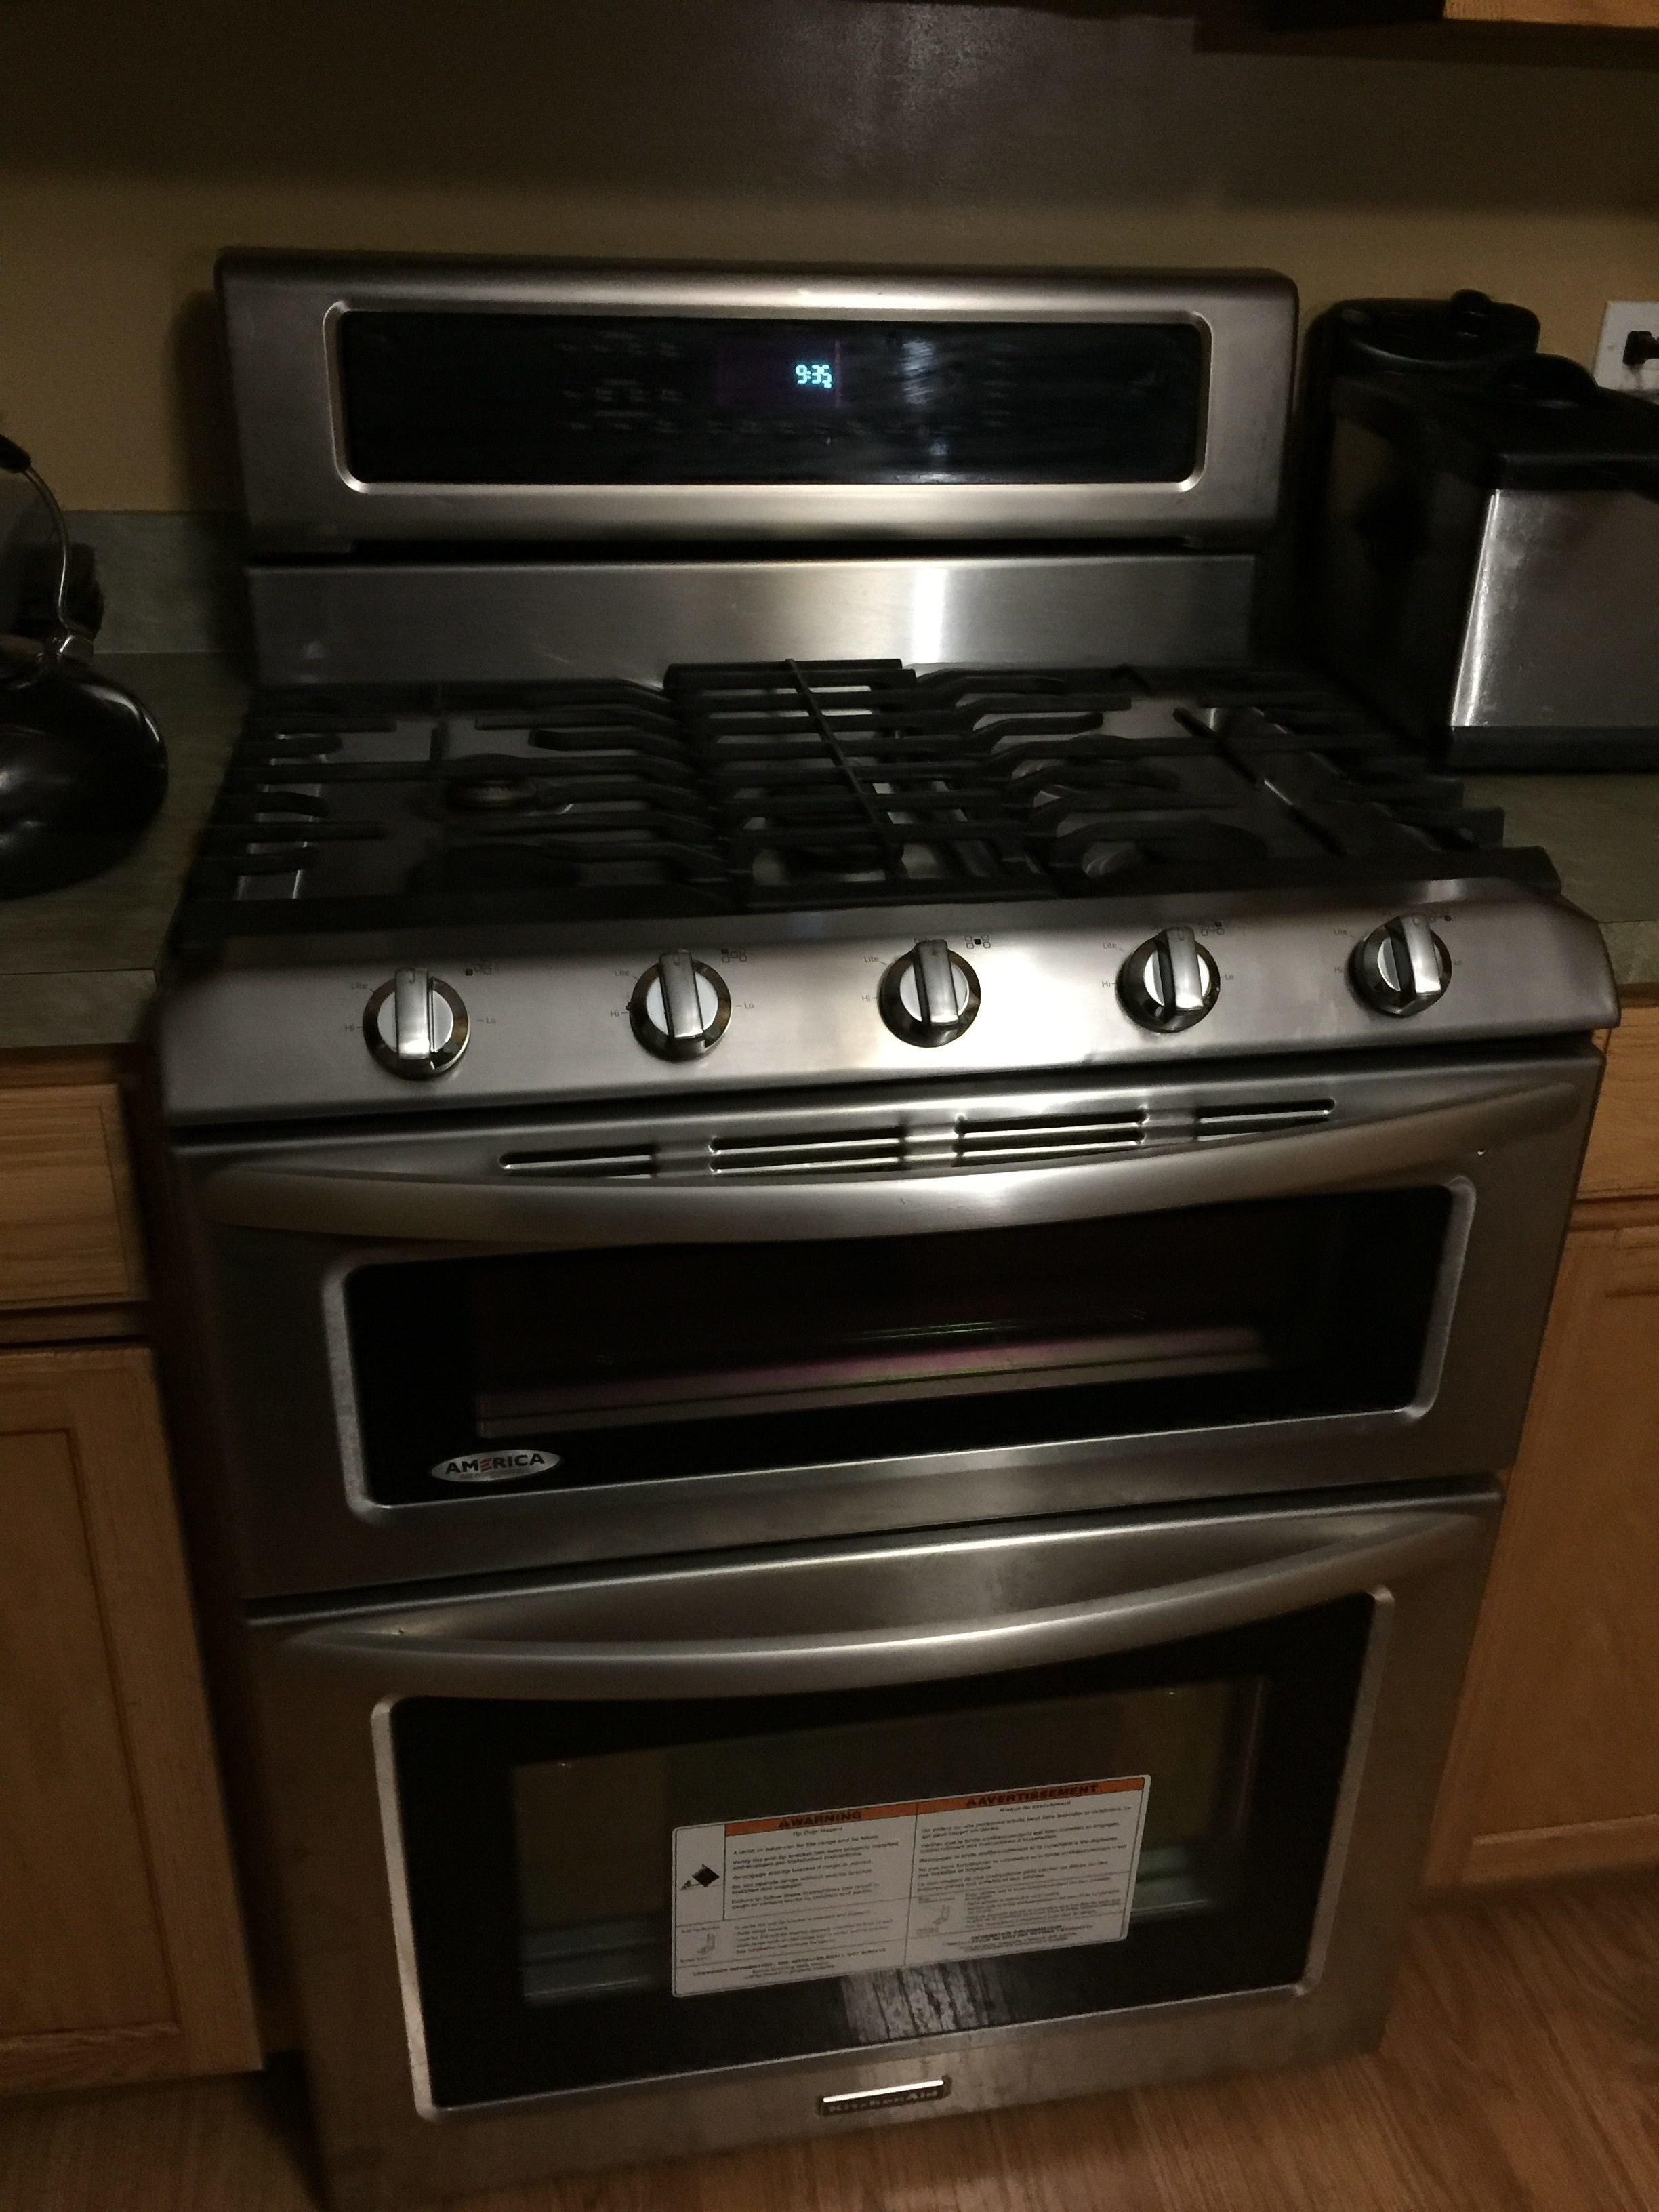 Top 811 Complaints and Reviews about KitchenAid Stoves & Ovens ...